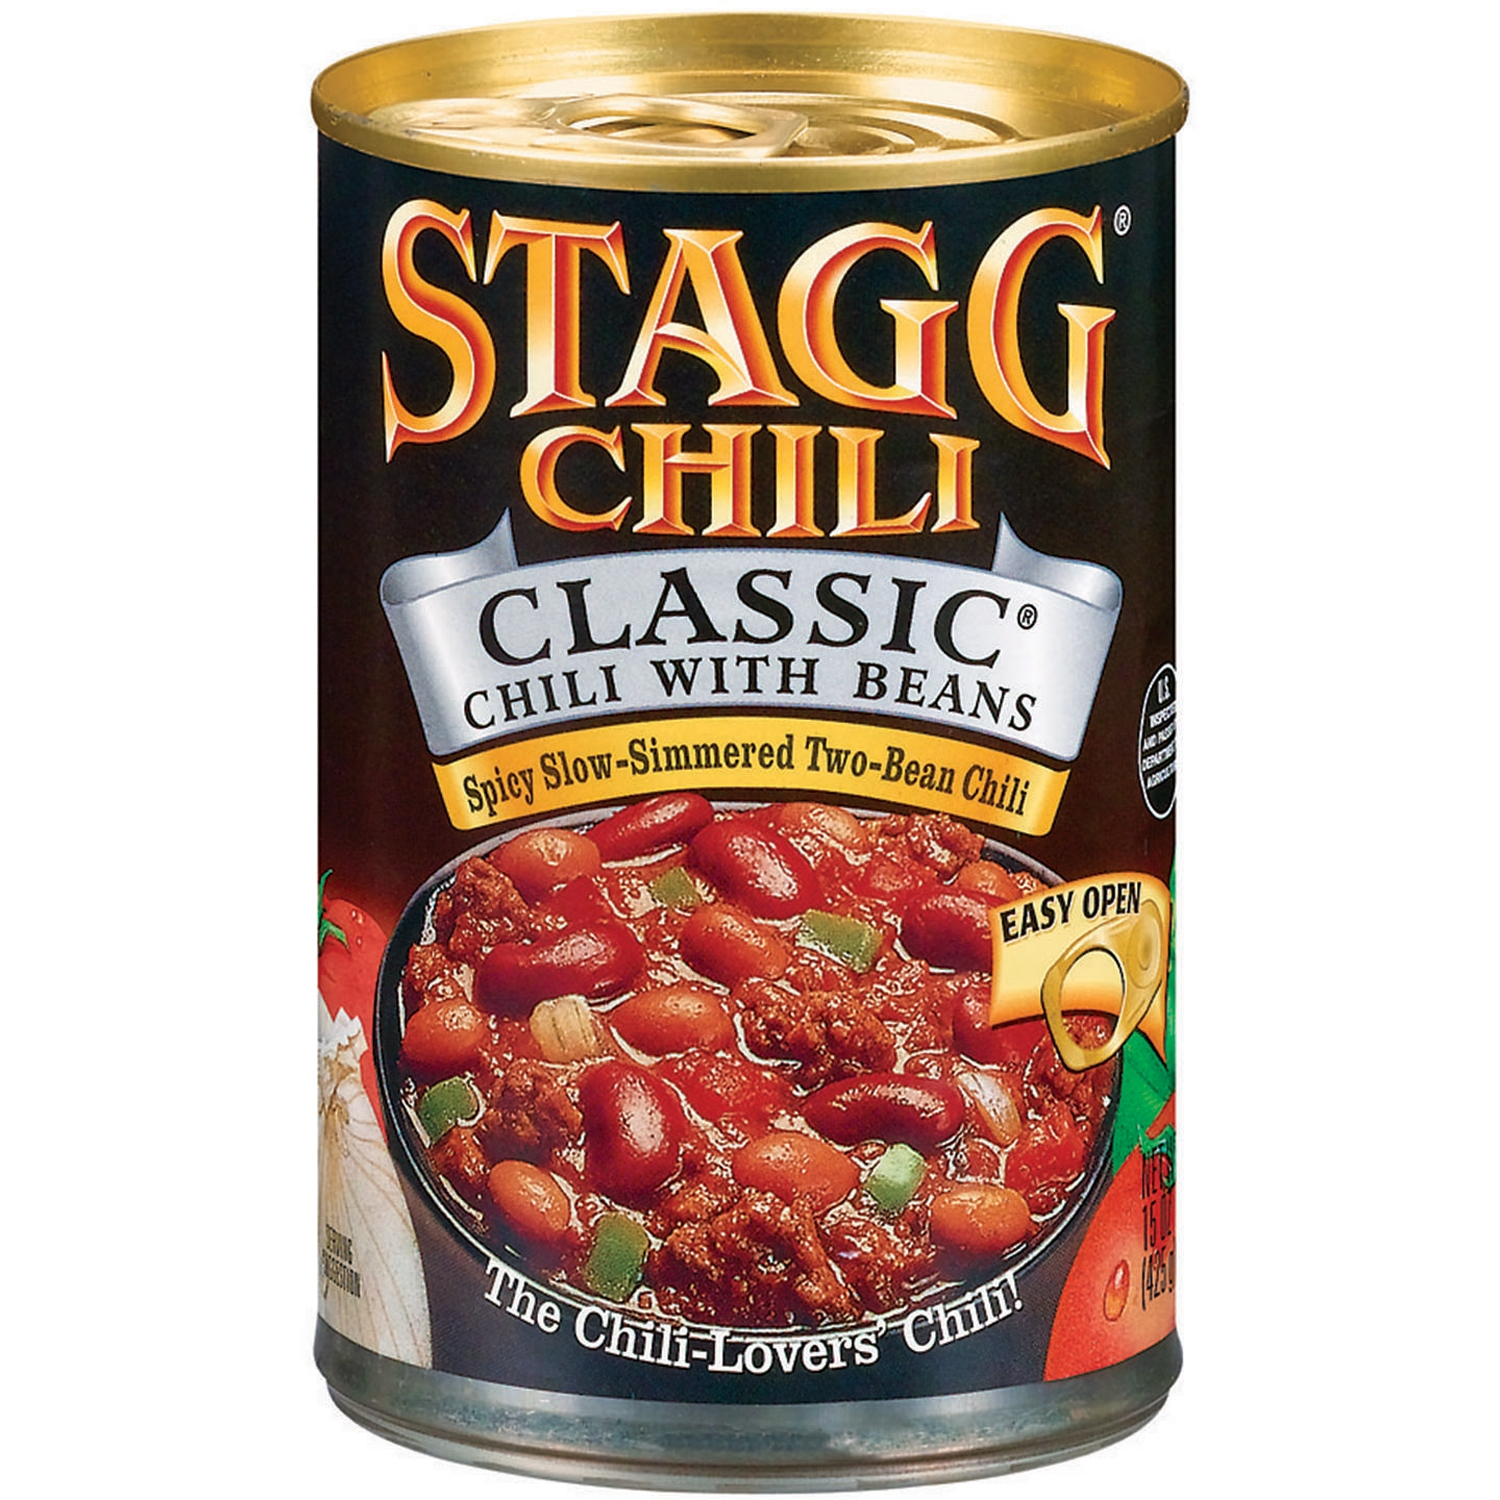 Stagg Chili Classic Chili with Beans, 15.0 OZ